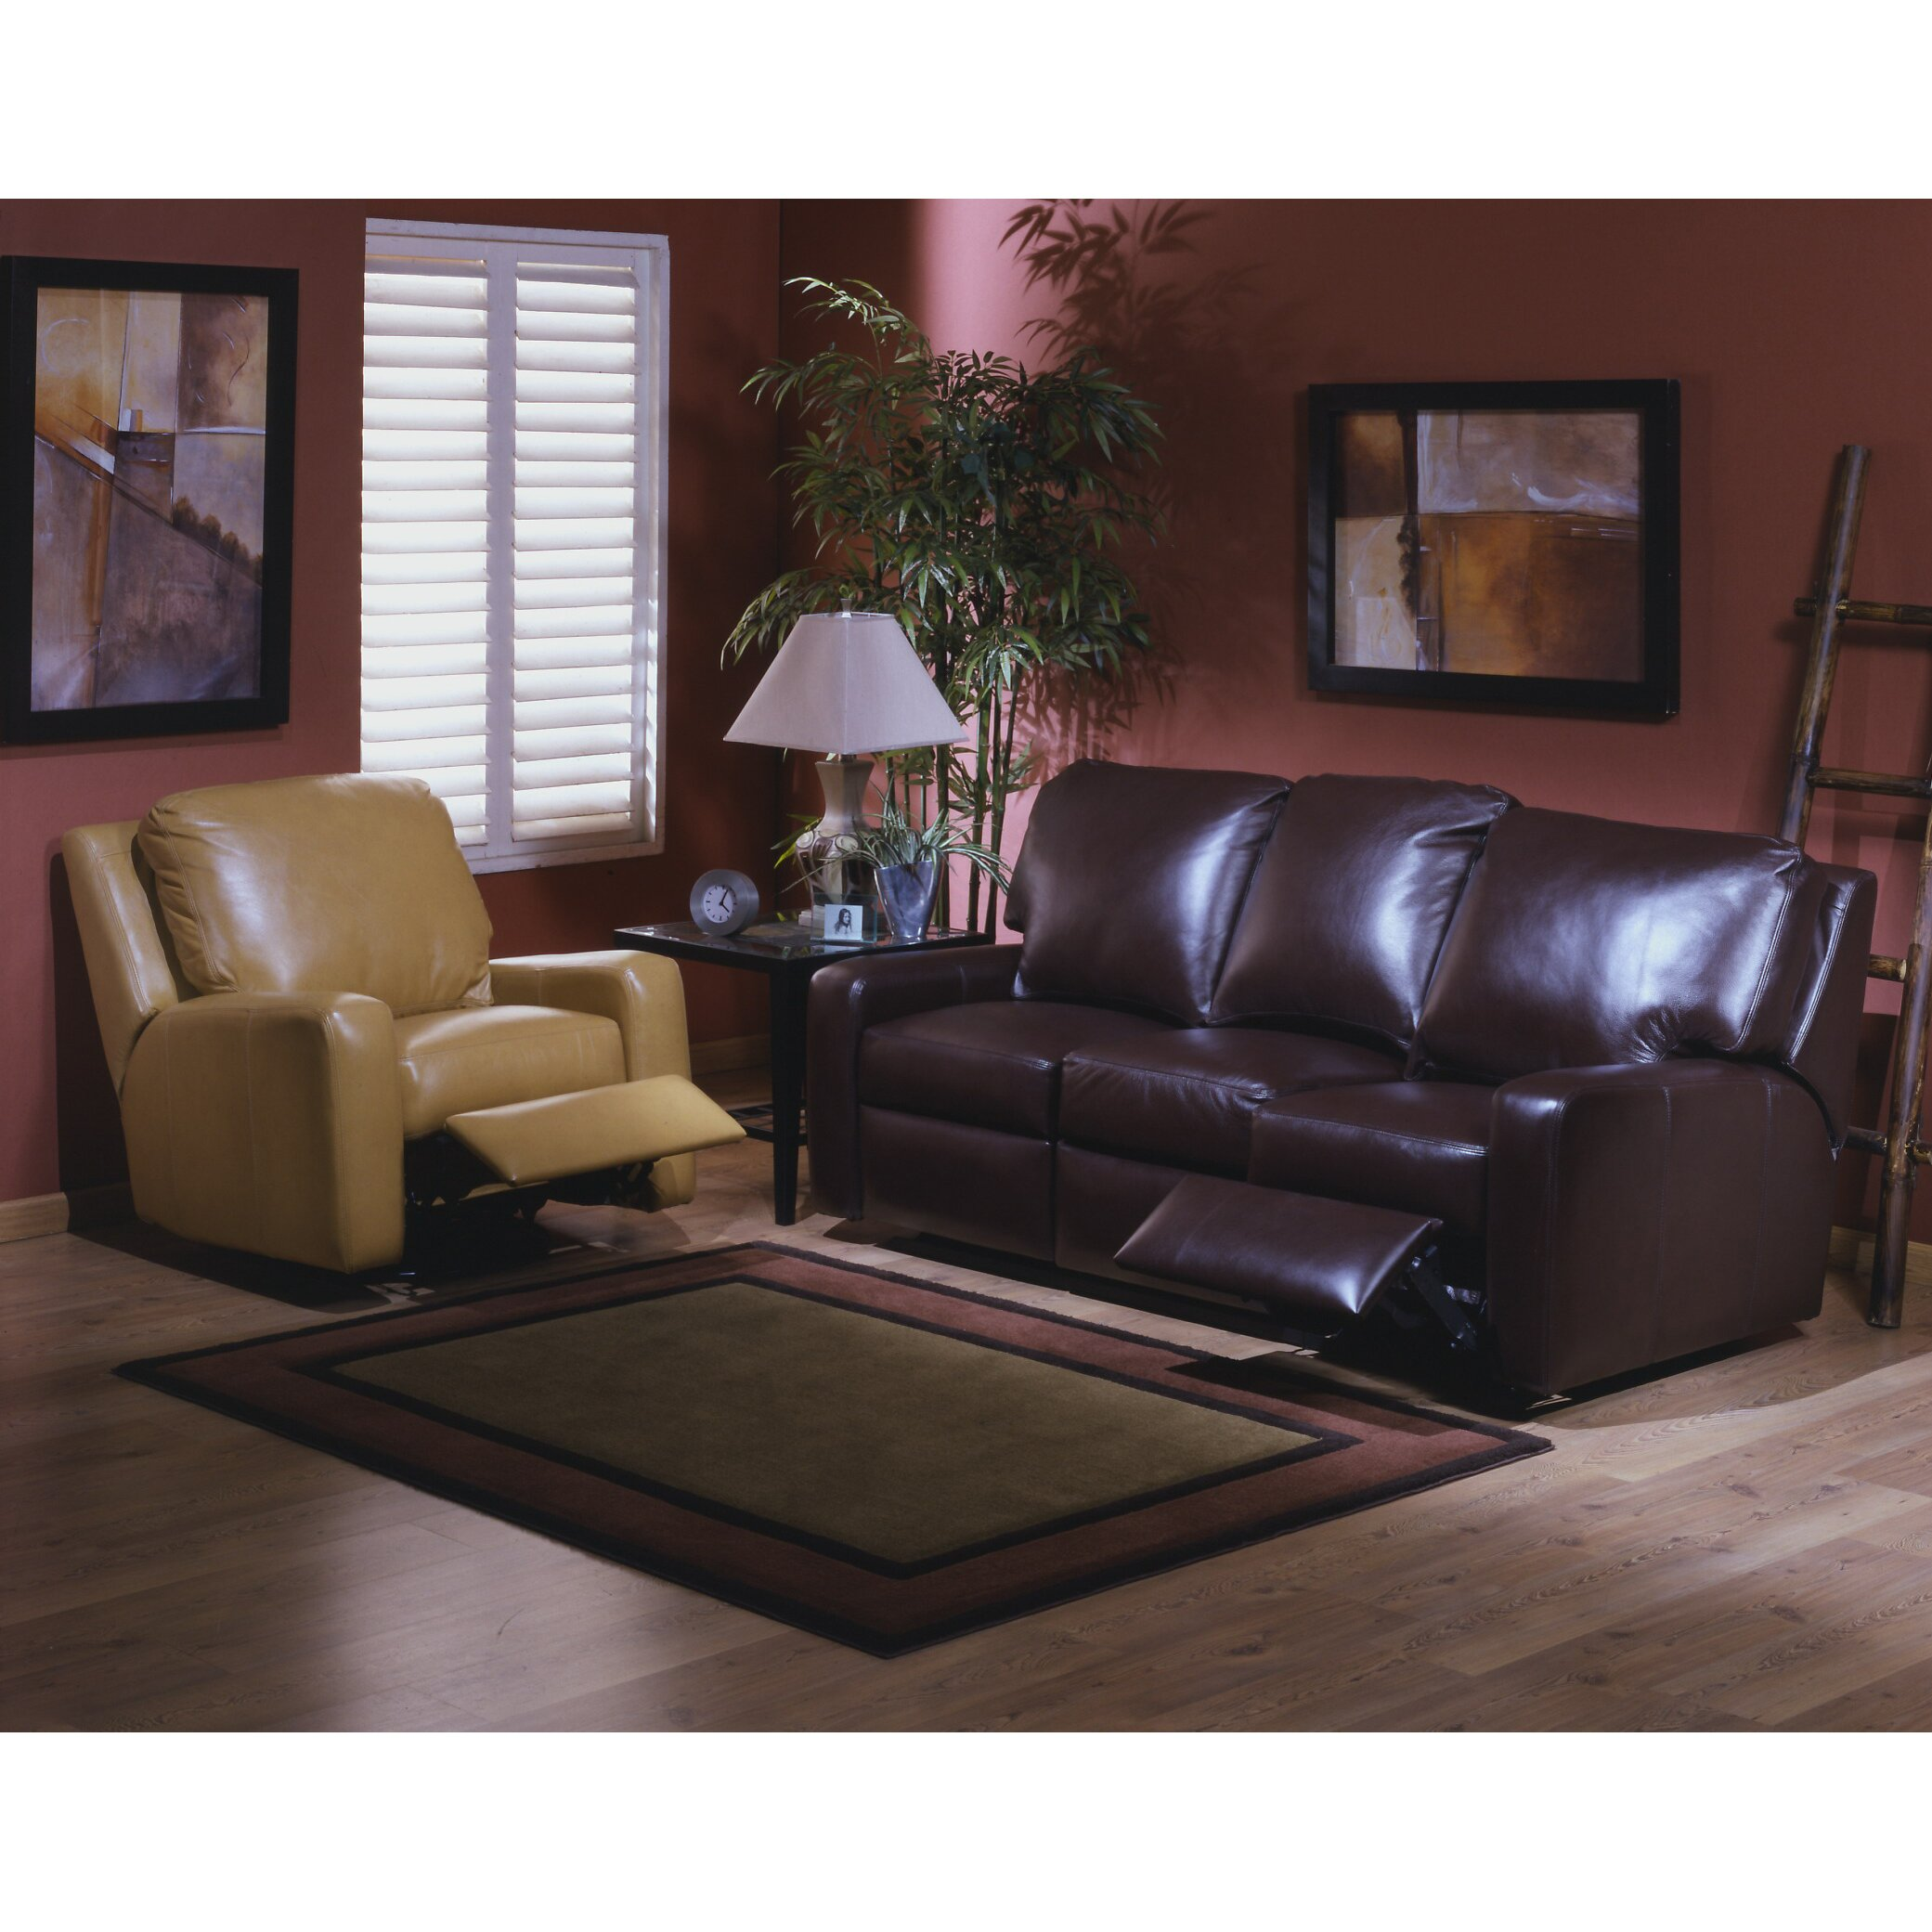 Omnia Leather Mirage 4 Seat Sofa Leather Living Room Set Reviews Wayf